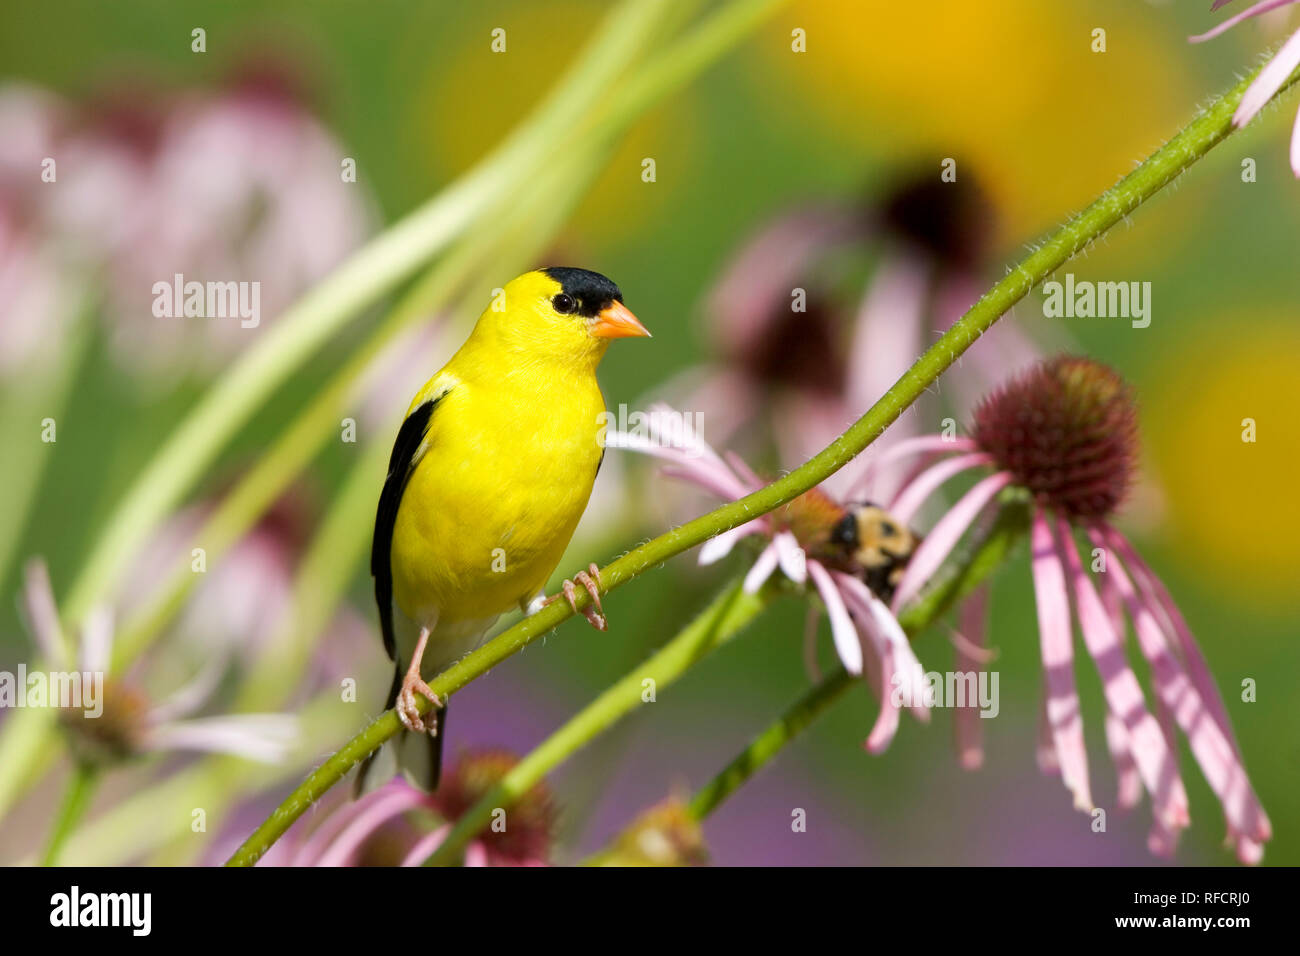 01640-145.10 American Goldfinch (Carduelis tristis) male on Pale Purple Coneflower (Echinacea pallida) in flower garden, Marion Co. IL - Stock Image